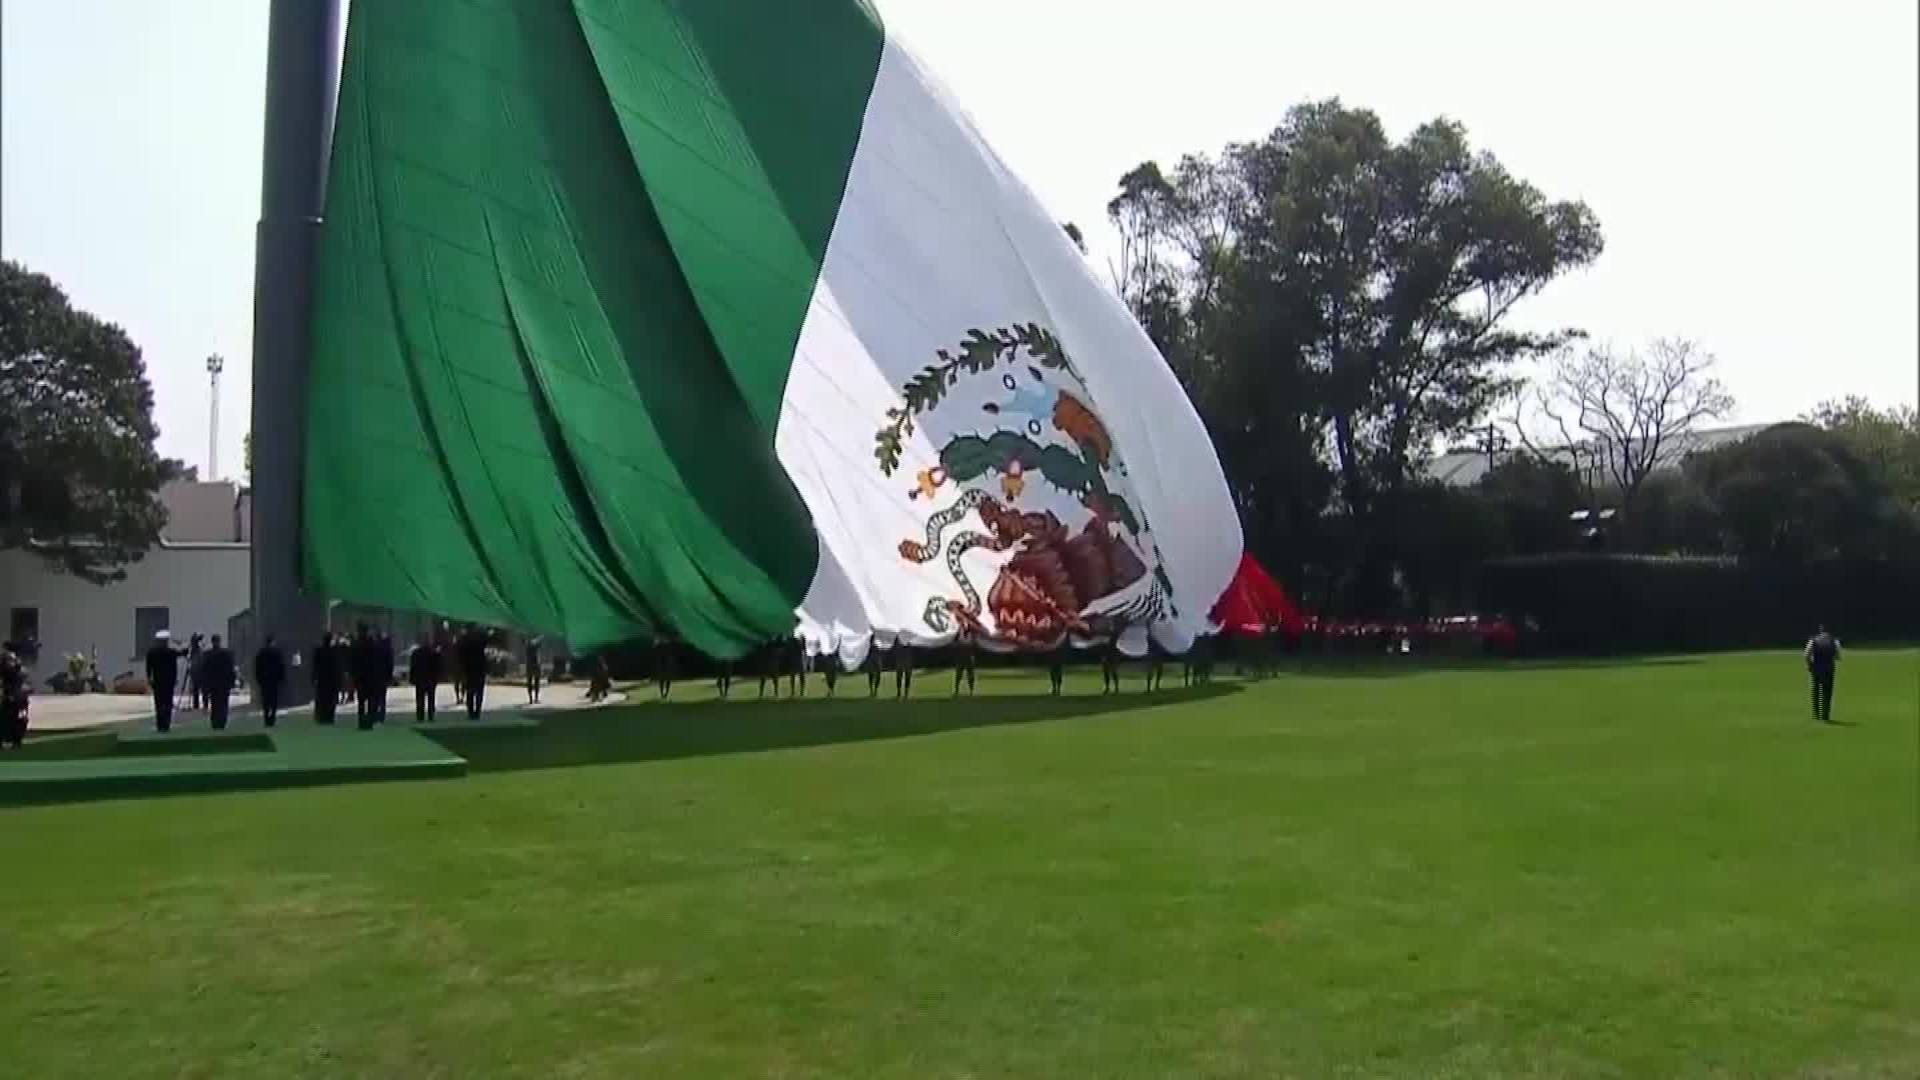 Izan Bandera Mexicana Al Revés En Evento De Peña Nieto Cnn Video